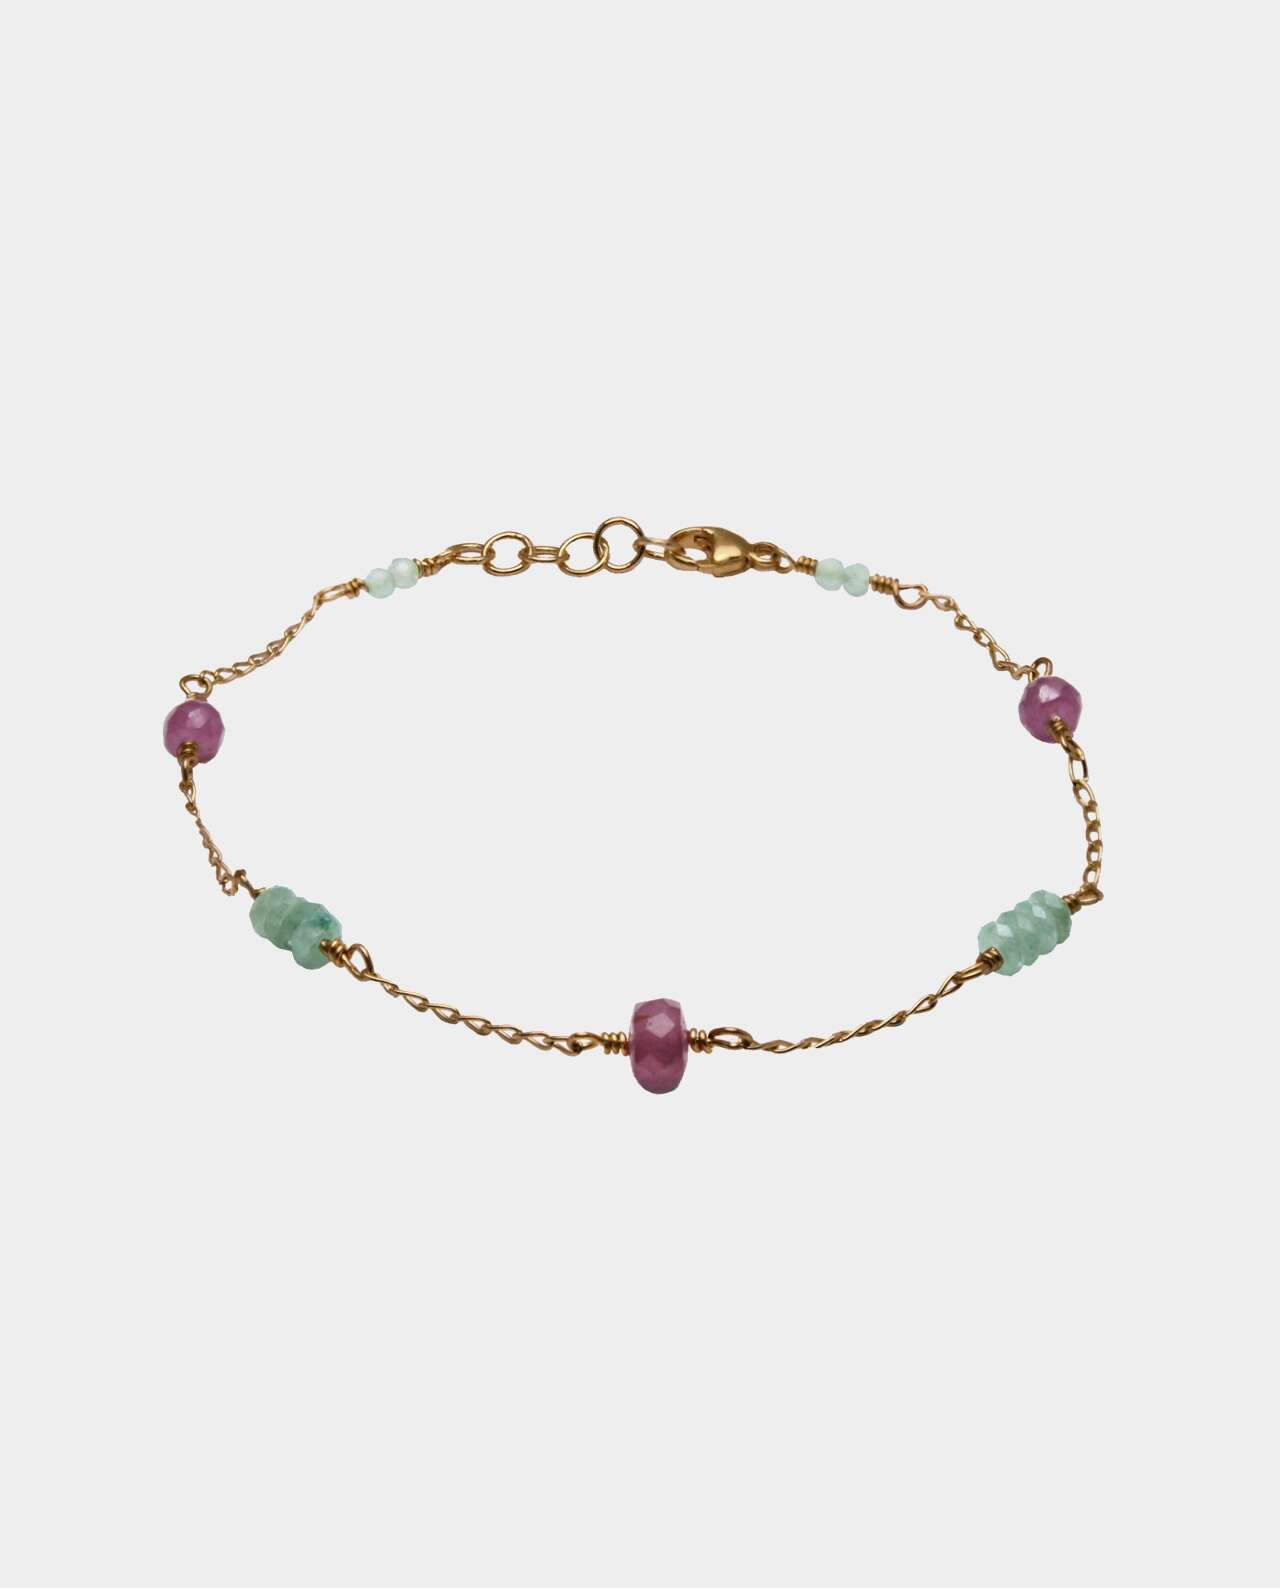 Handmade vintage bracelets with aventurins and pink sapphire and sterling silver plated with 18 carat gold